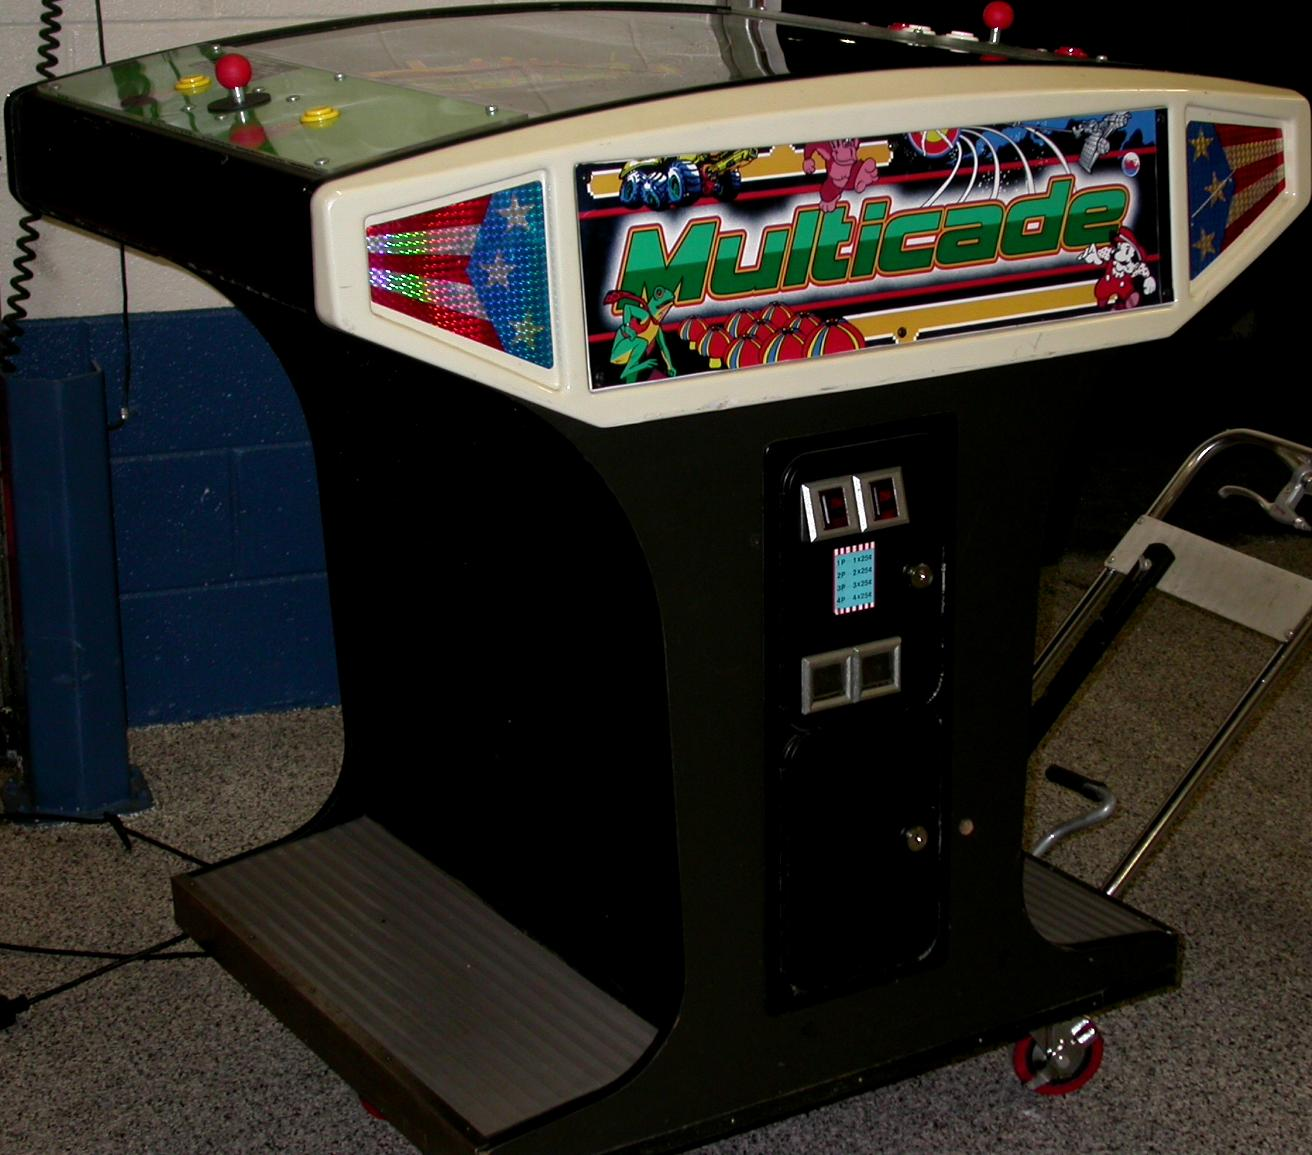 Cocktail Arcade Cabinet Ms Pacman Galaga Frogger Combo Video Arcade Game Upright Machine